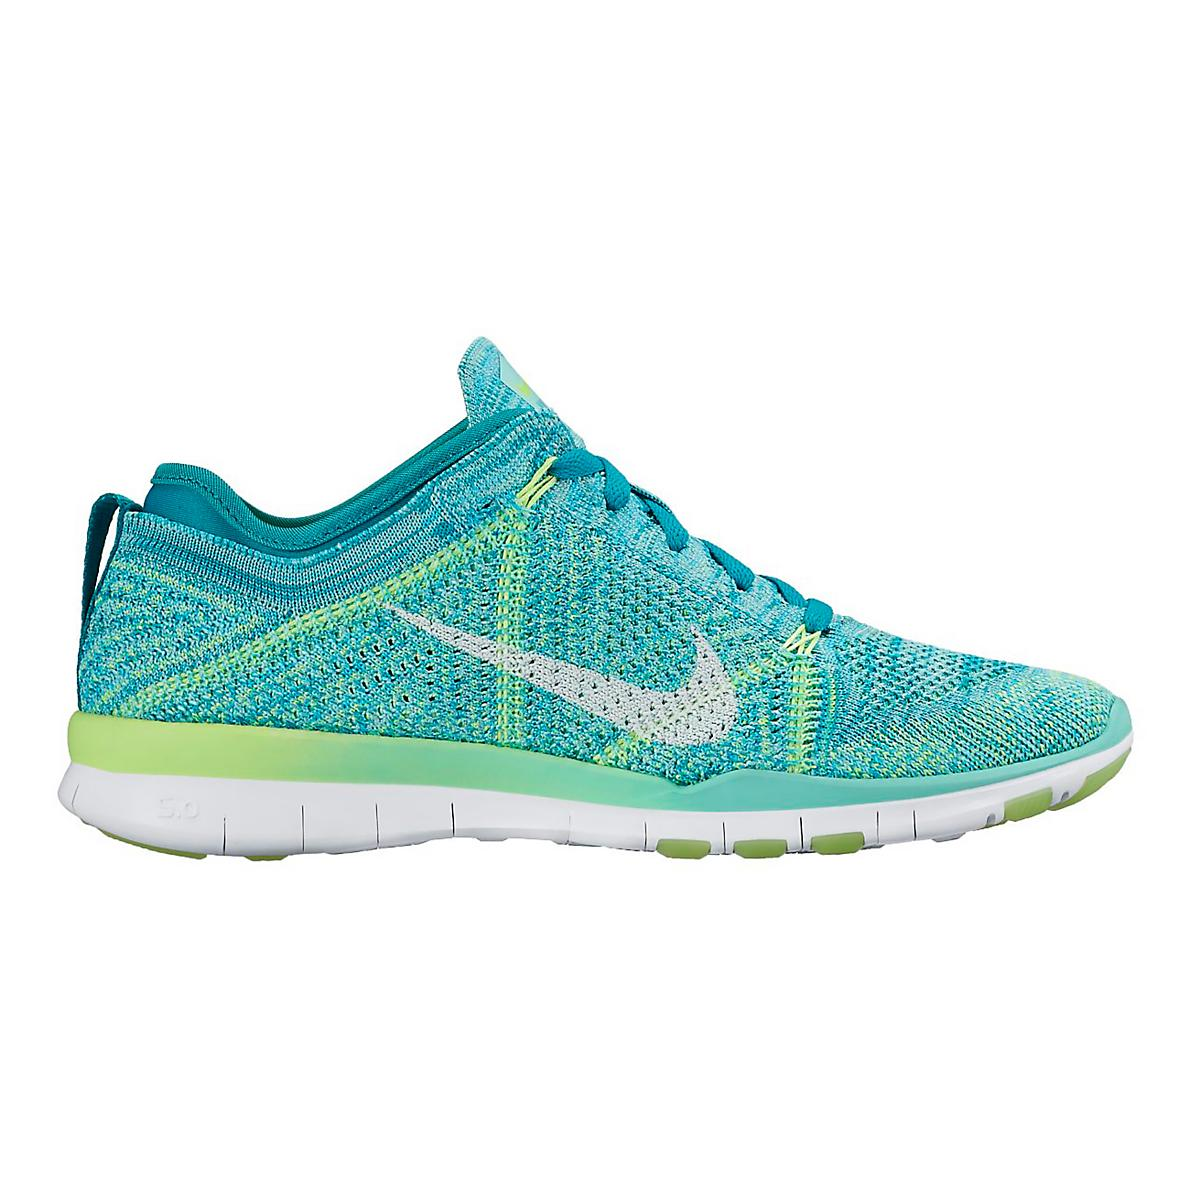 wmns nike free tr flyknit 5.0 yellow